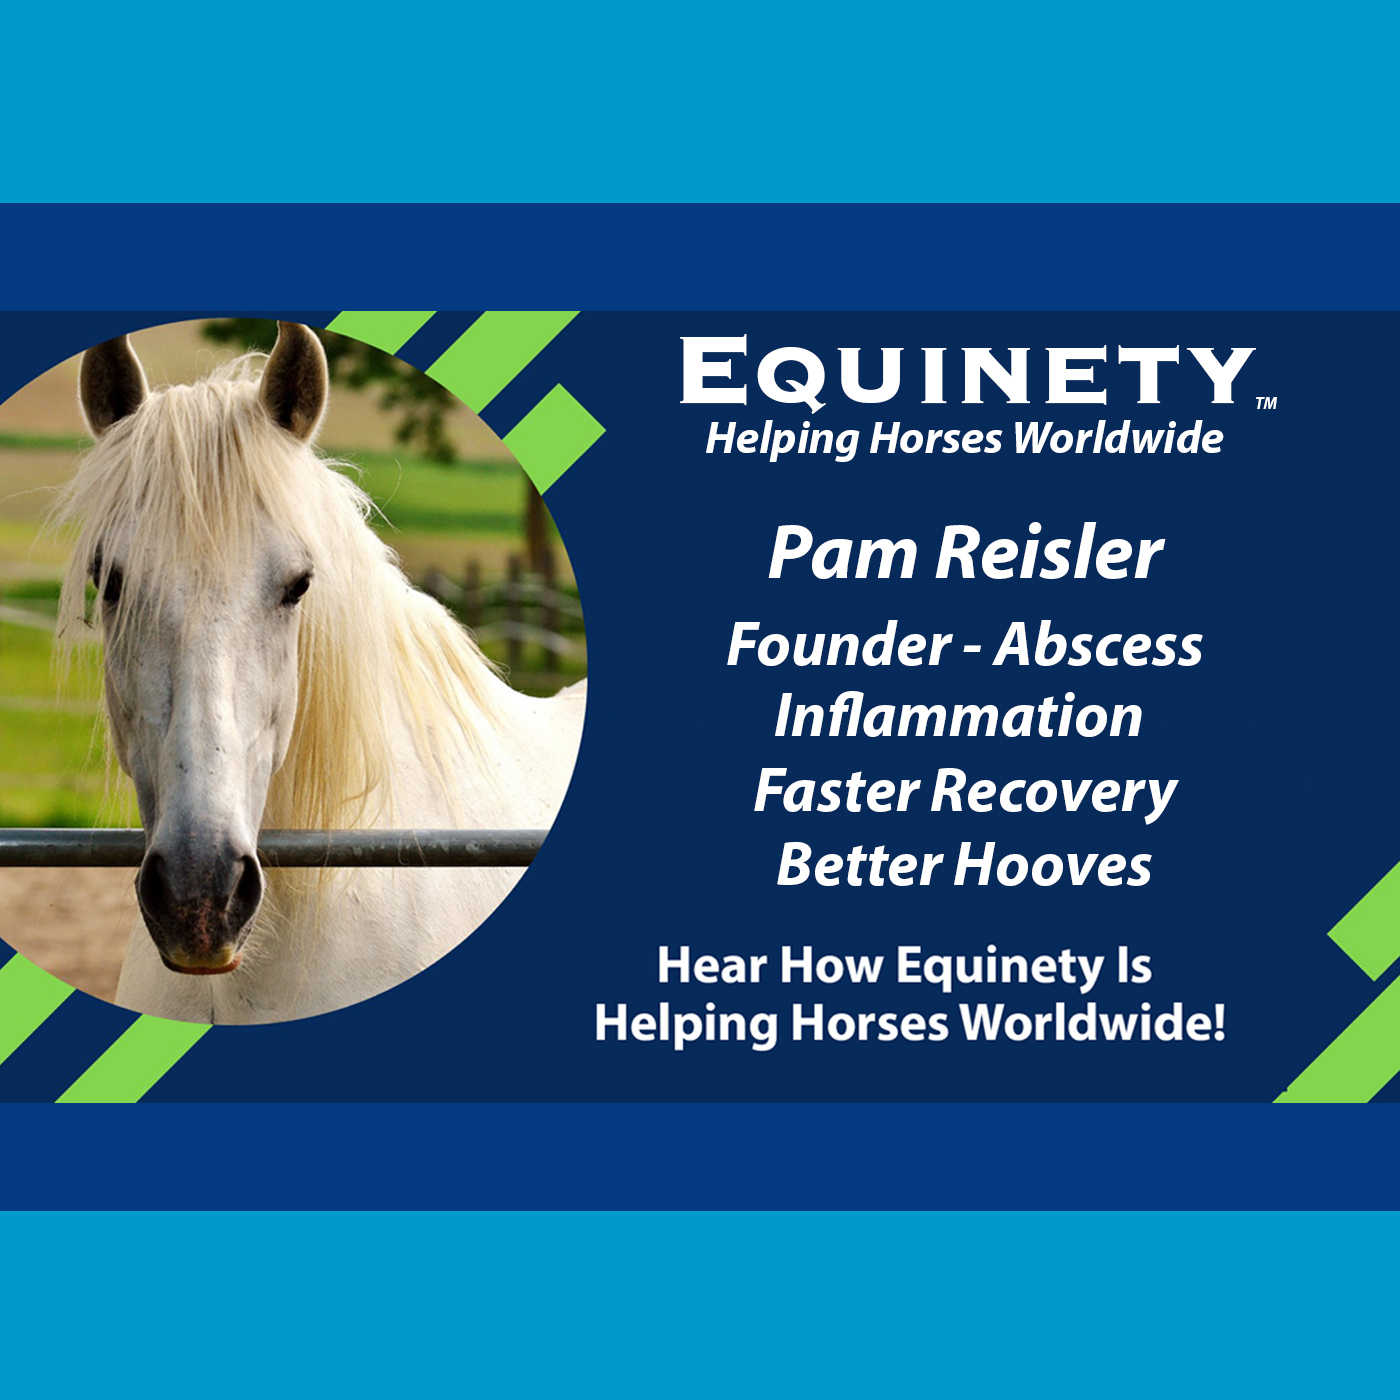 Pam Reisler – Inflammation – Foundered – Abscess - Cutting Horse – Full Recovery